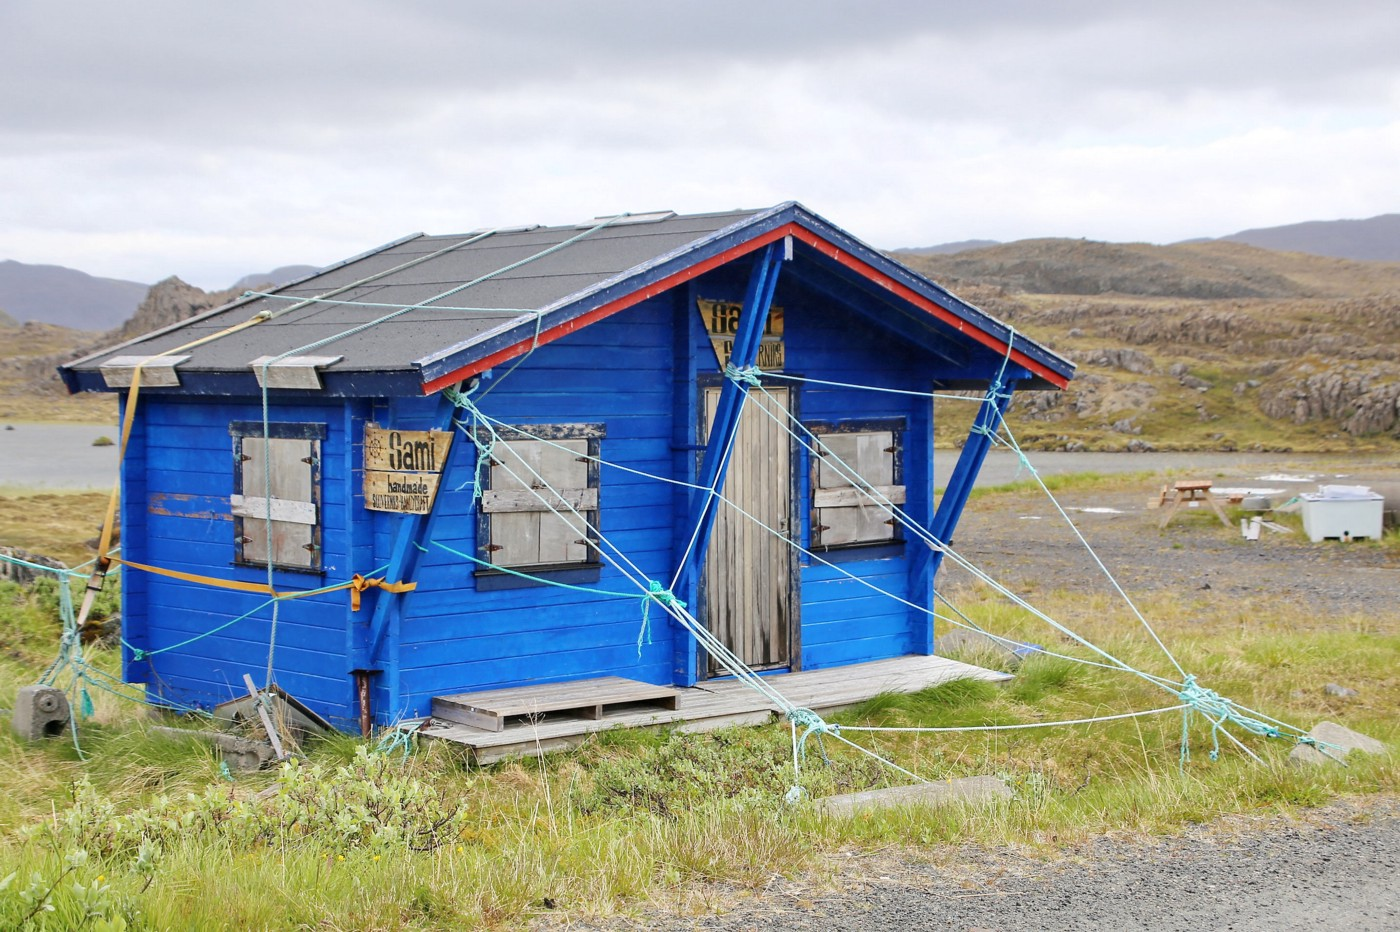 A small, simple blue house stands in the middle of a field, put together by ropes and structure.